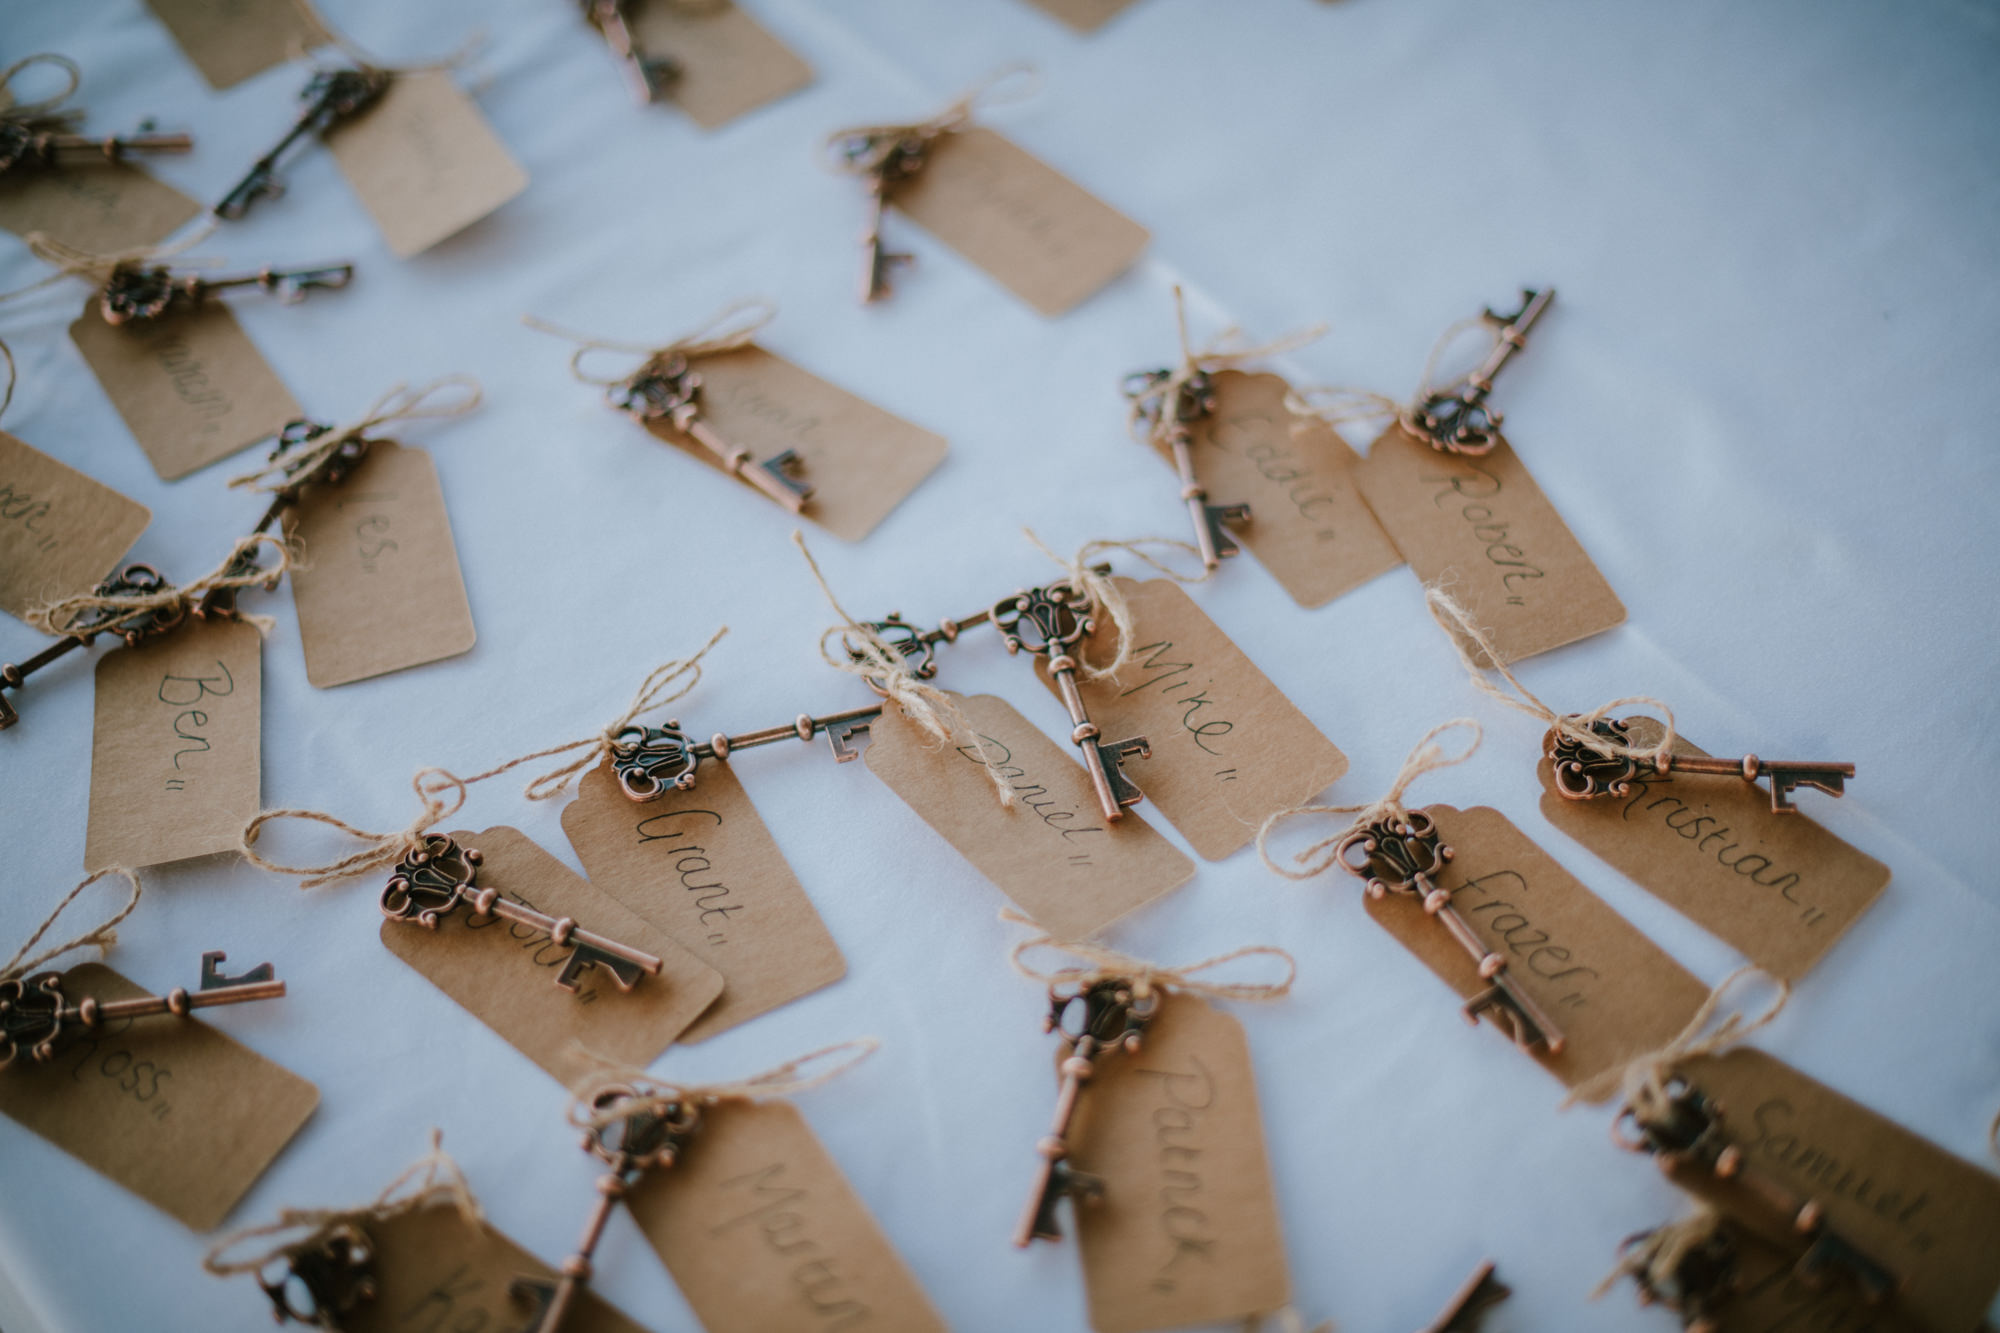 Here are the wedding favours for the wedding guests on this Dubrovnik wedding. They are lovely little keys with guest name tags on them.